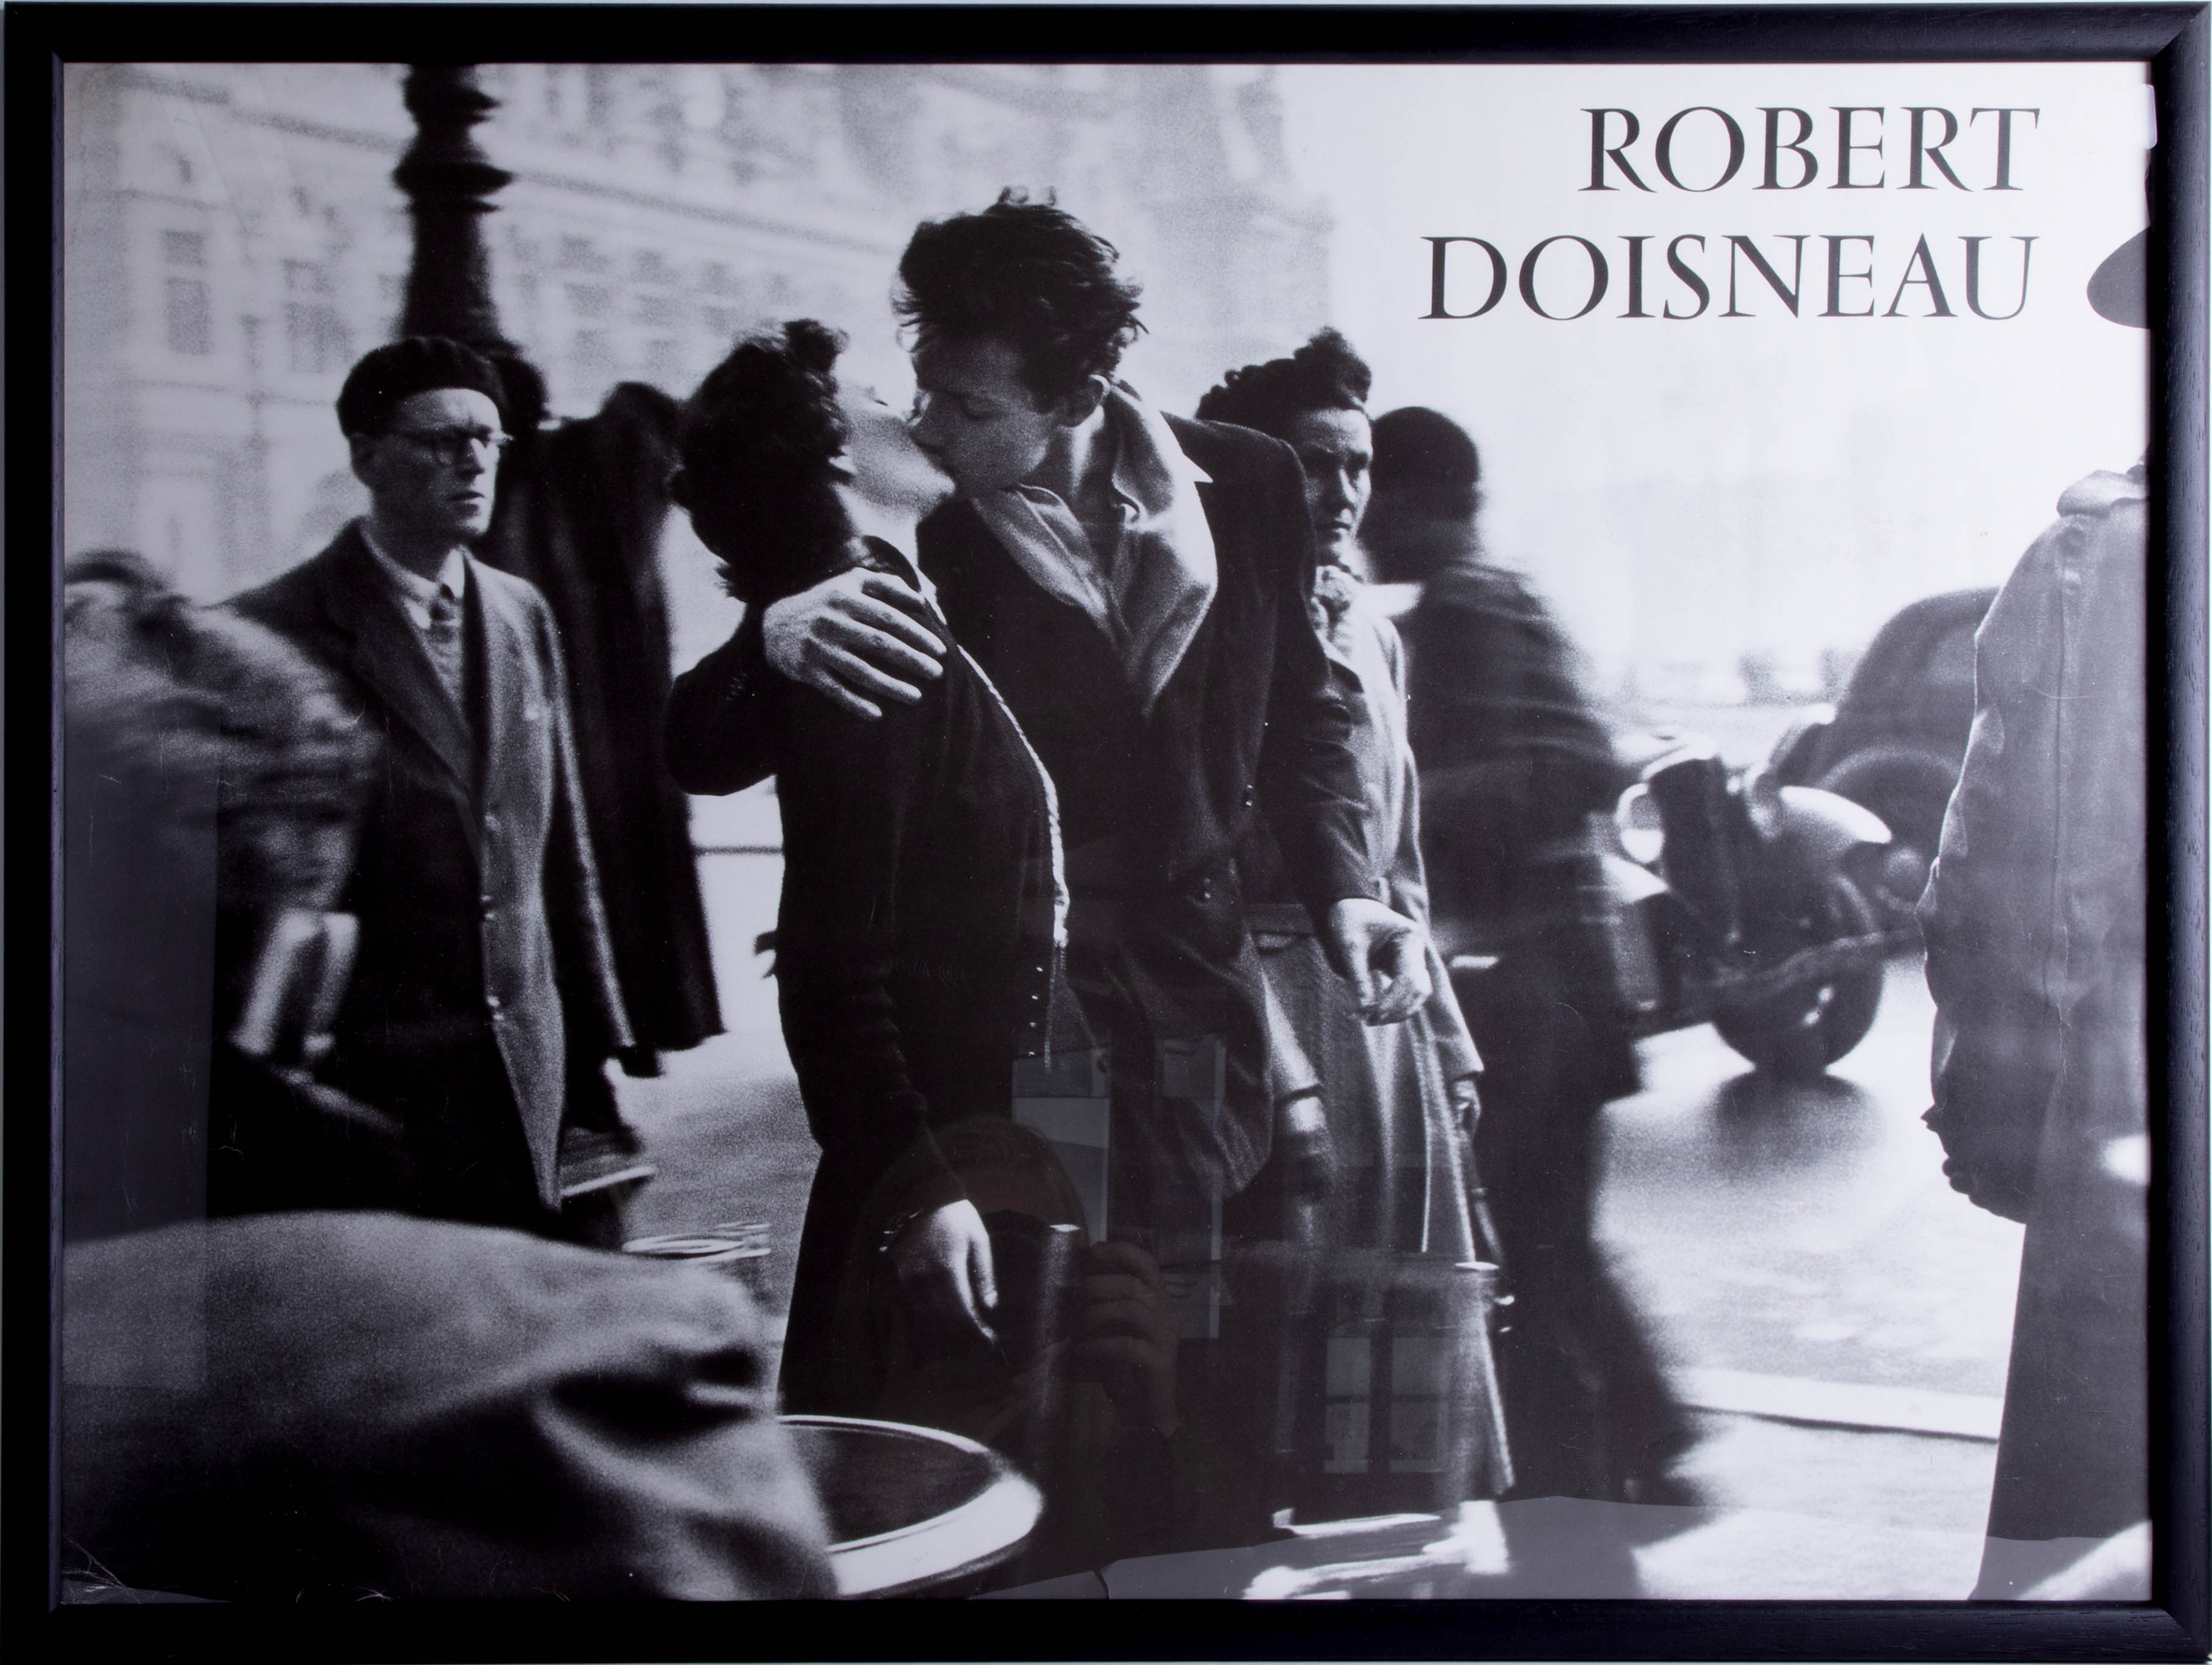 Lot 038 - Robert Doisneau, 'The Kiss by the Town Hall, Paris 1950' photographic poster, framed and glazed,